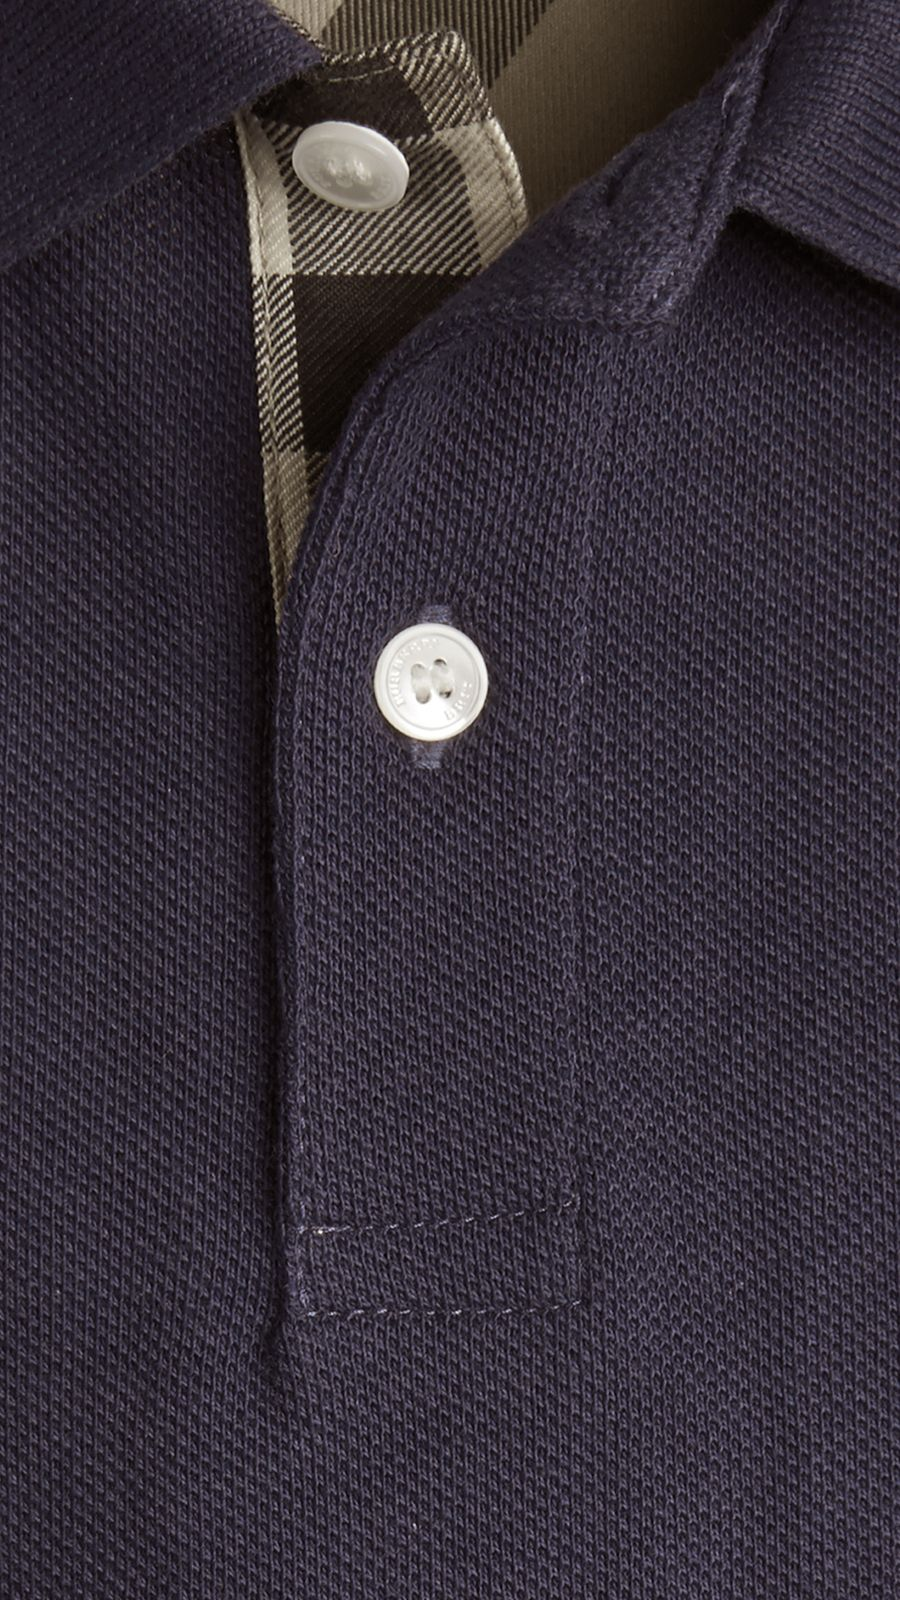 True navy Check Placket Polo Shirt True Navy - Image 2